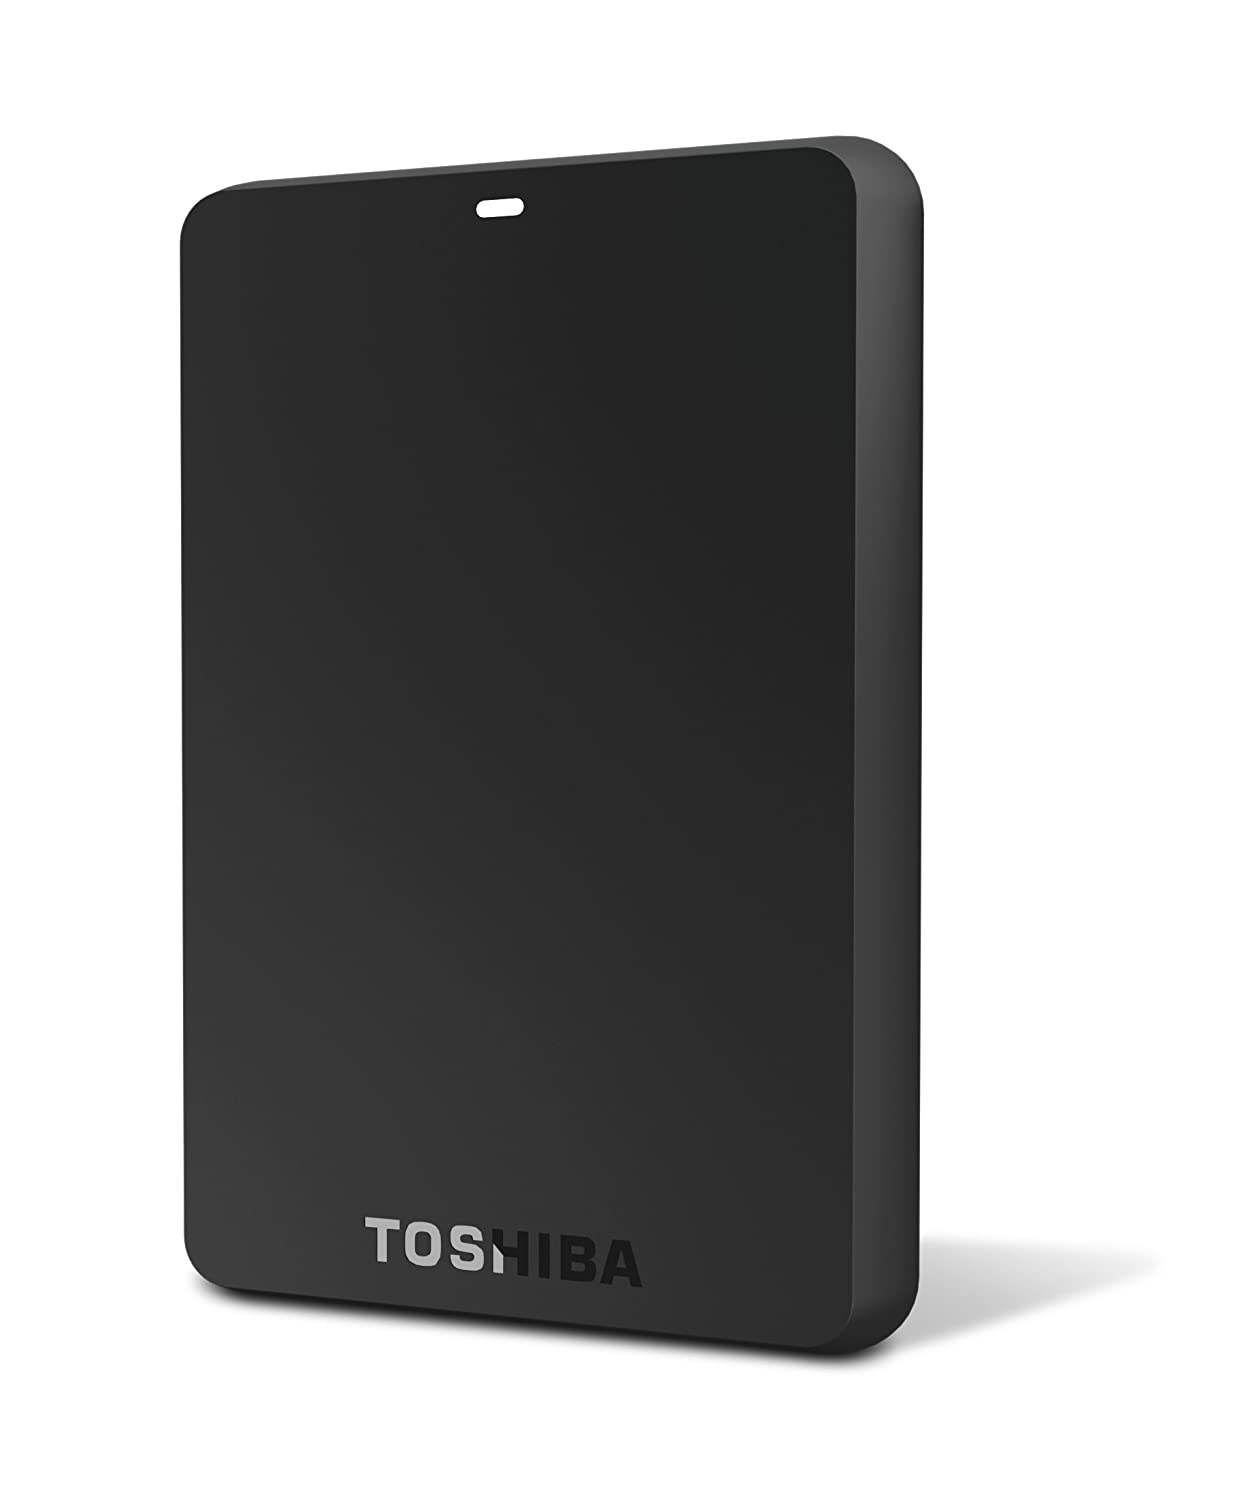 61bZ7u4L4 L._SL1500_ amazon com toshiba canvio 750 gb usb 3 0 basics portable hard hydrostat 3200 wiring diagram at webbmarketing.co